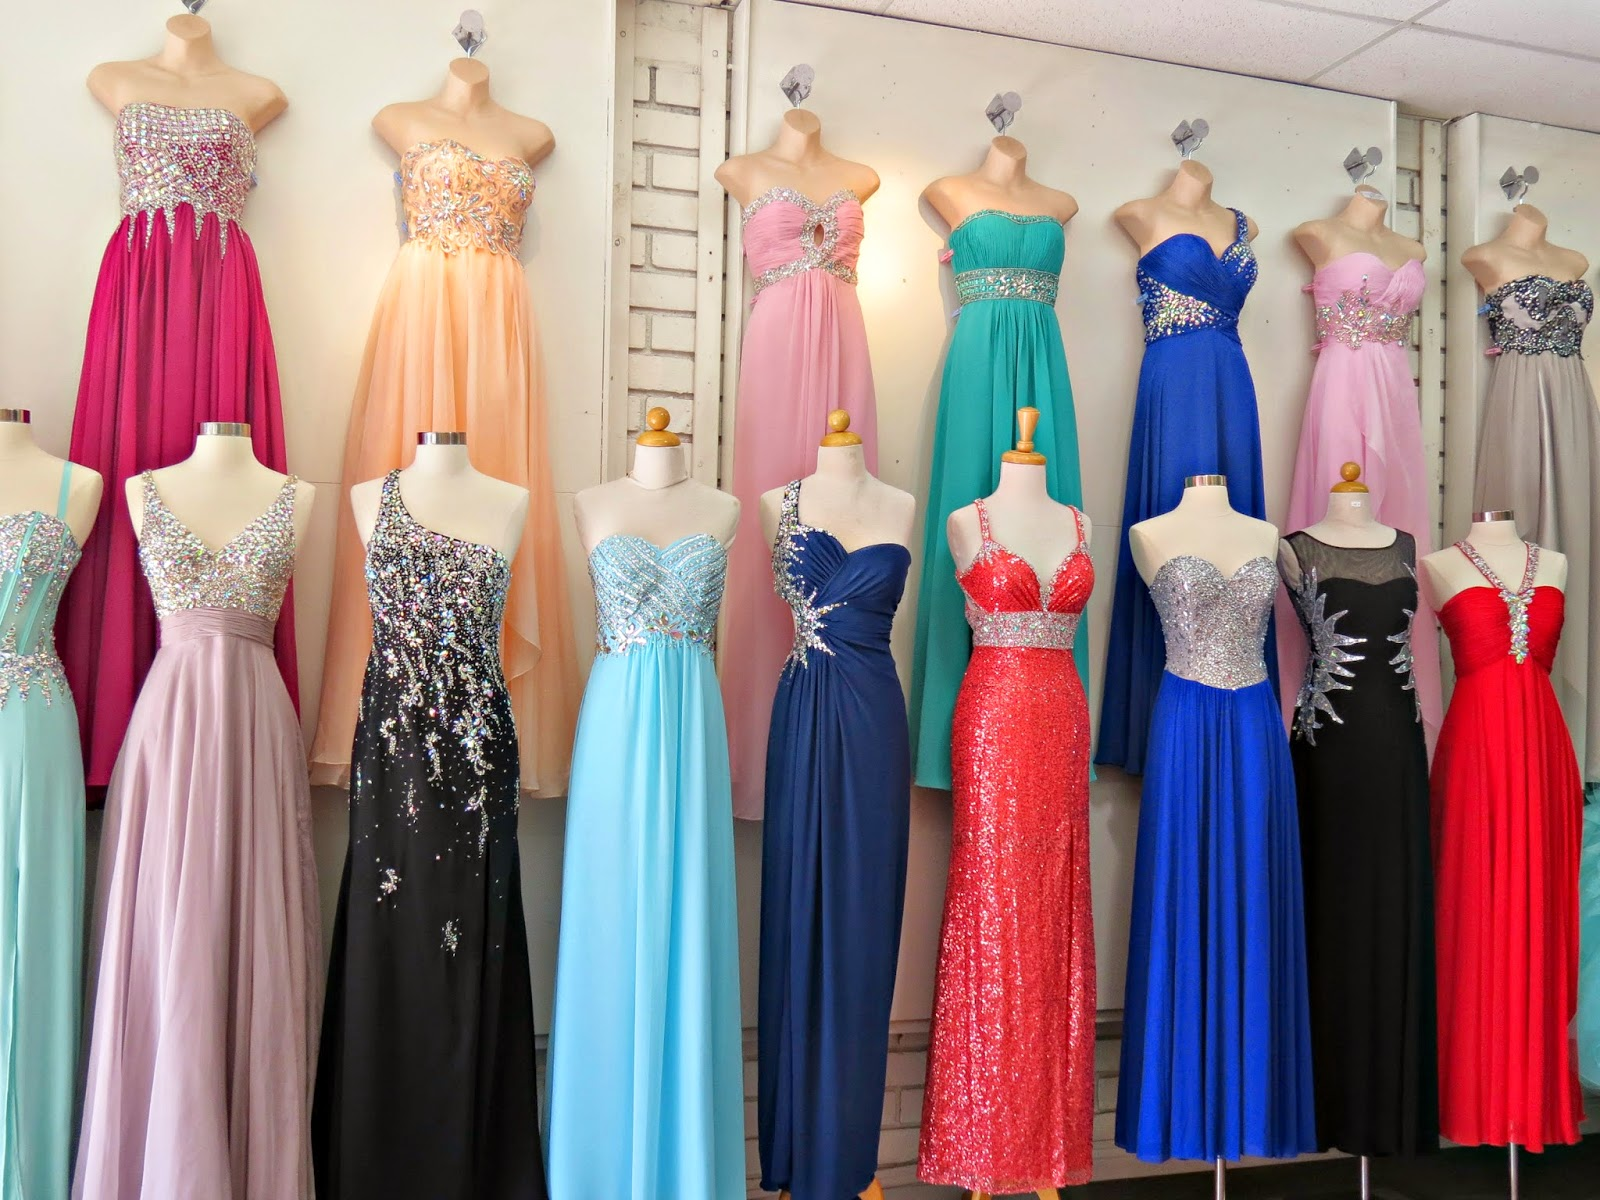 Prom Dresses Stores In Downtown Los Angeles - Eligent Prom ...